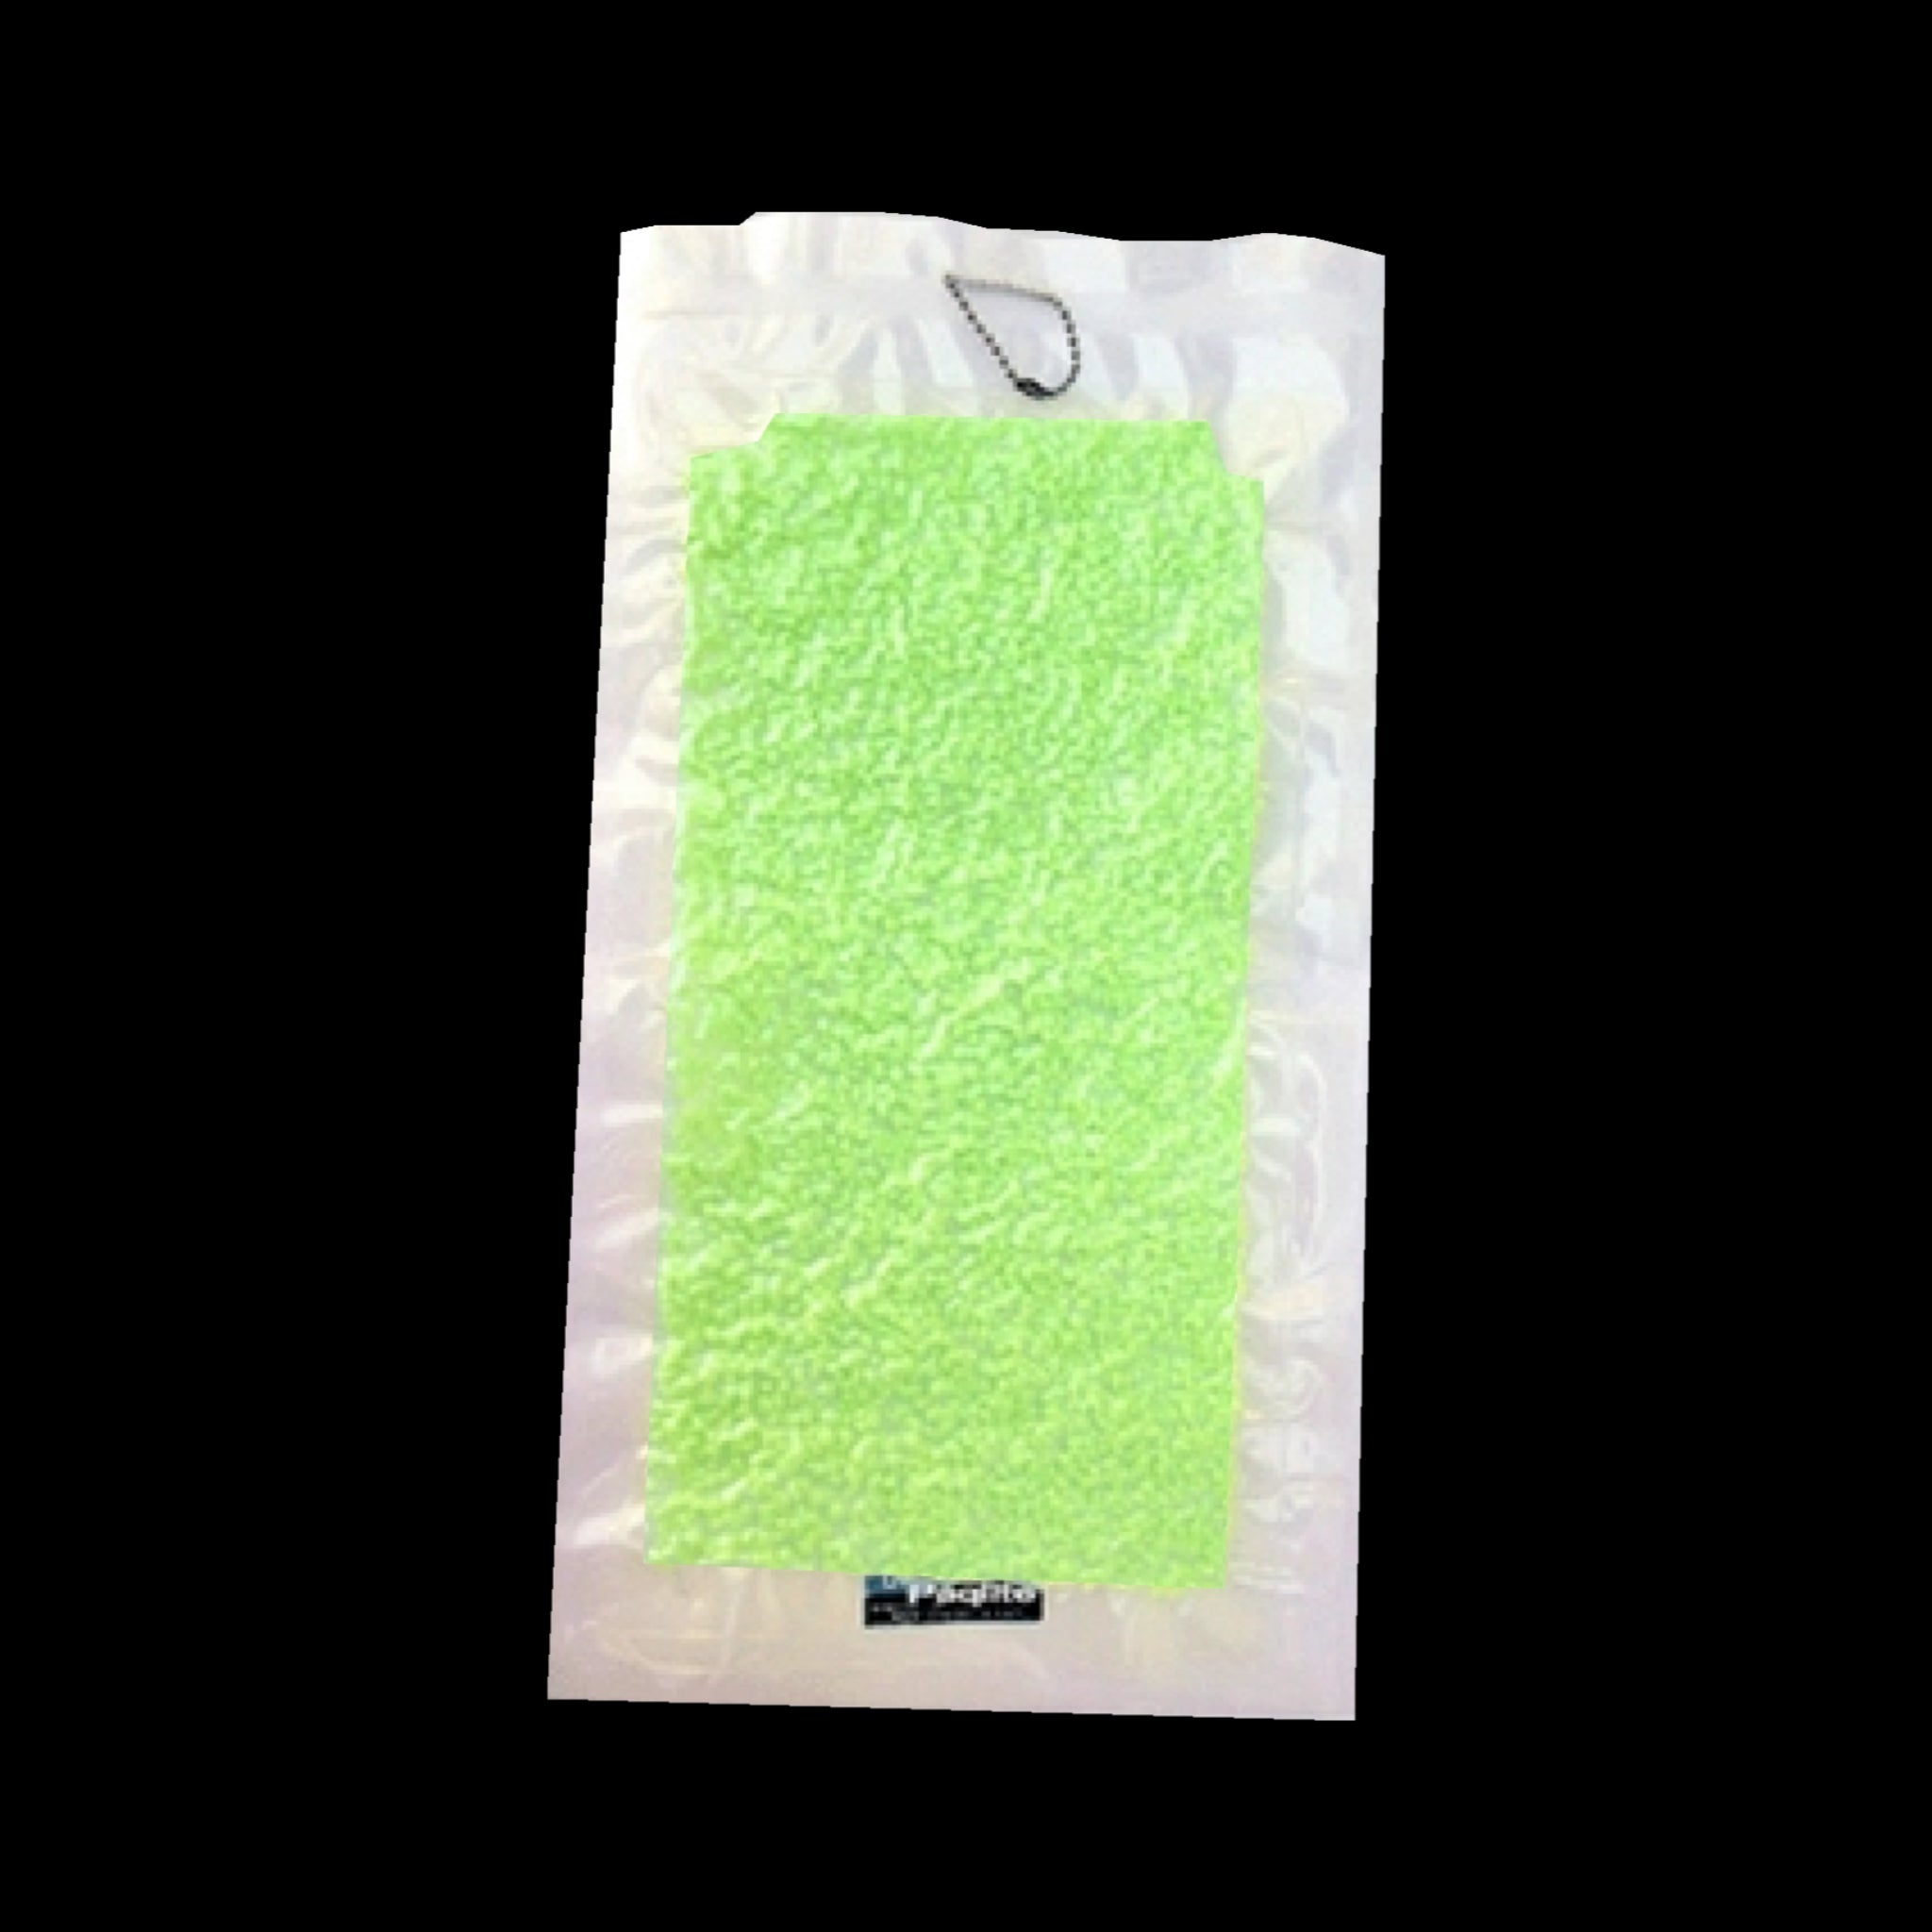 Glow in the Dark UV Paqlite - S/M/L